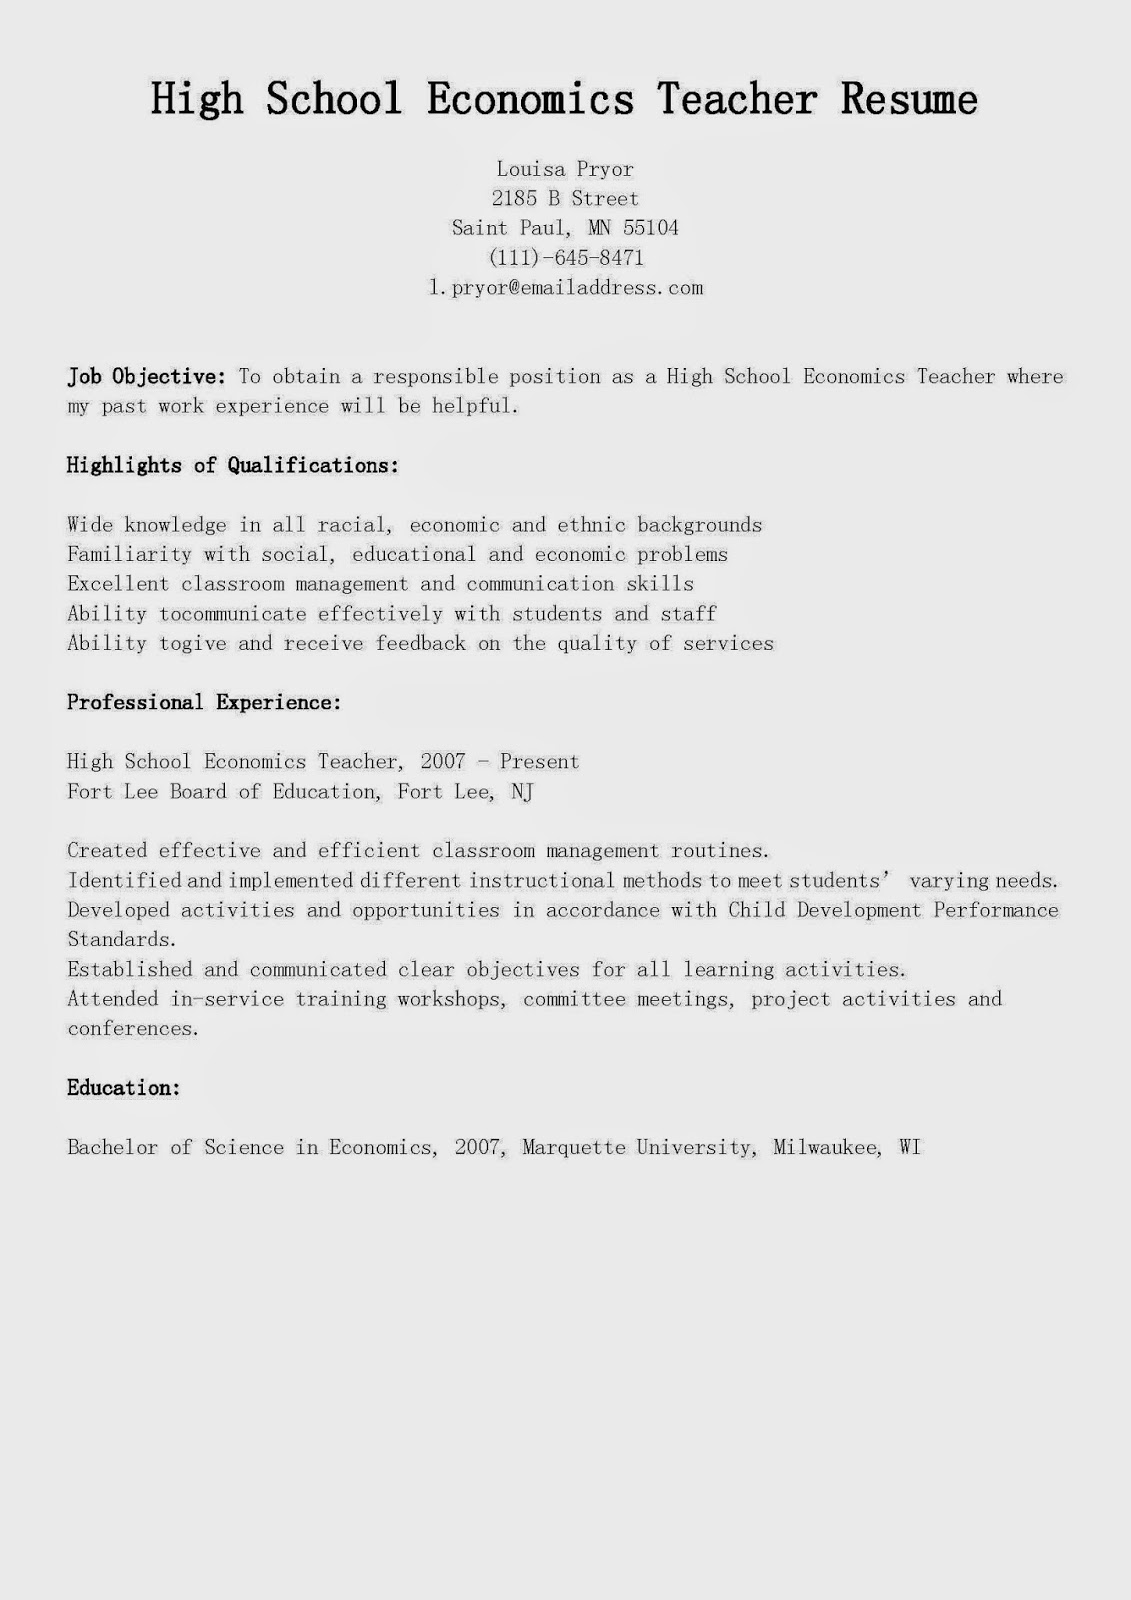 resume samples  high school economics teacher resume sample